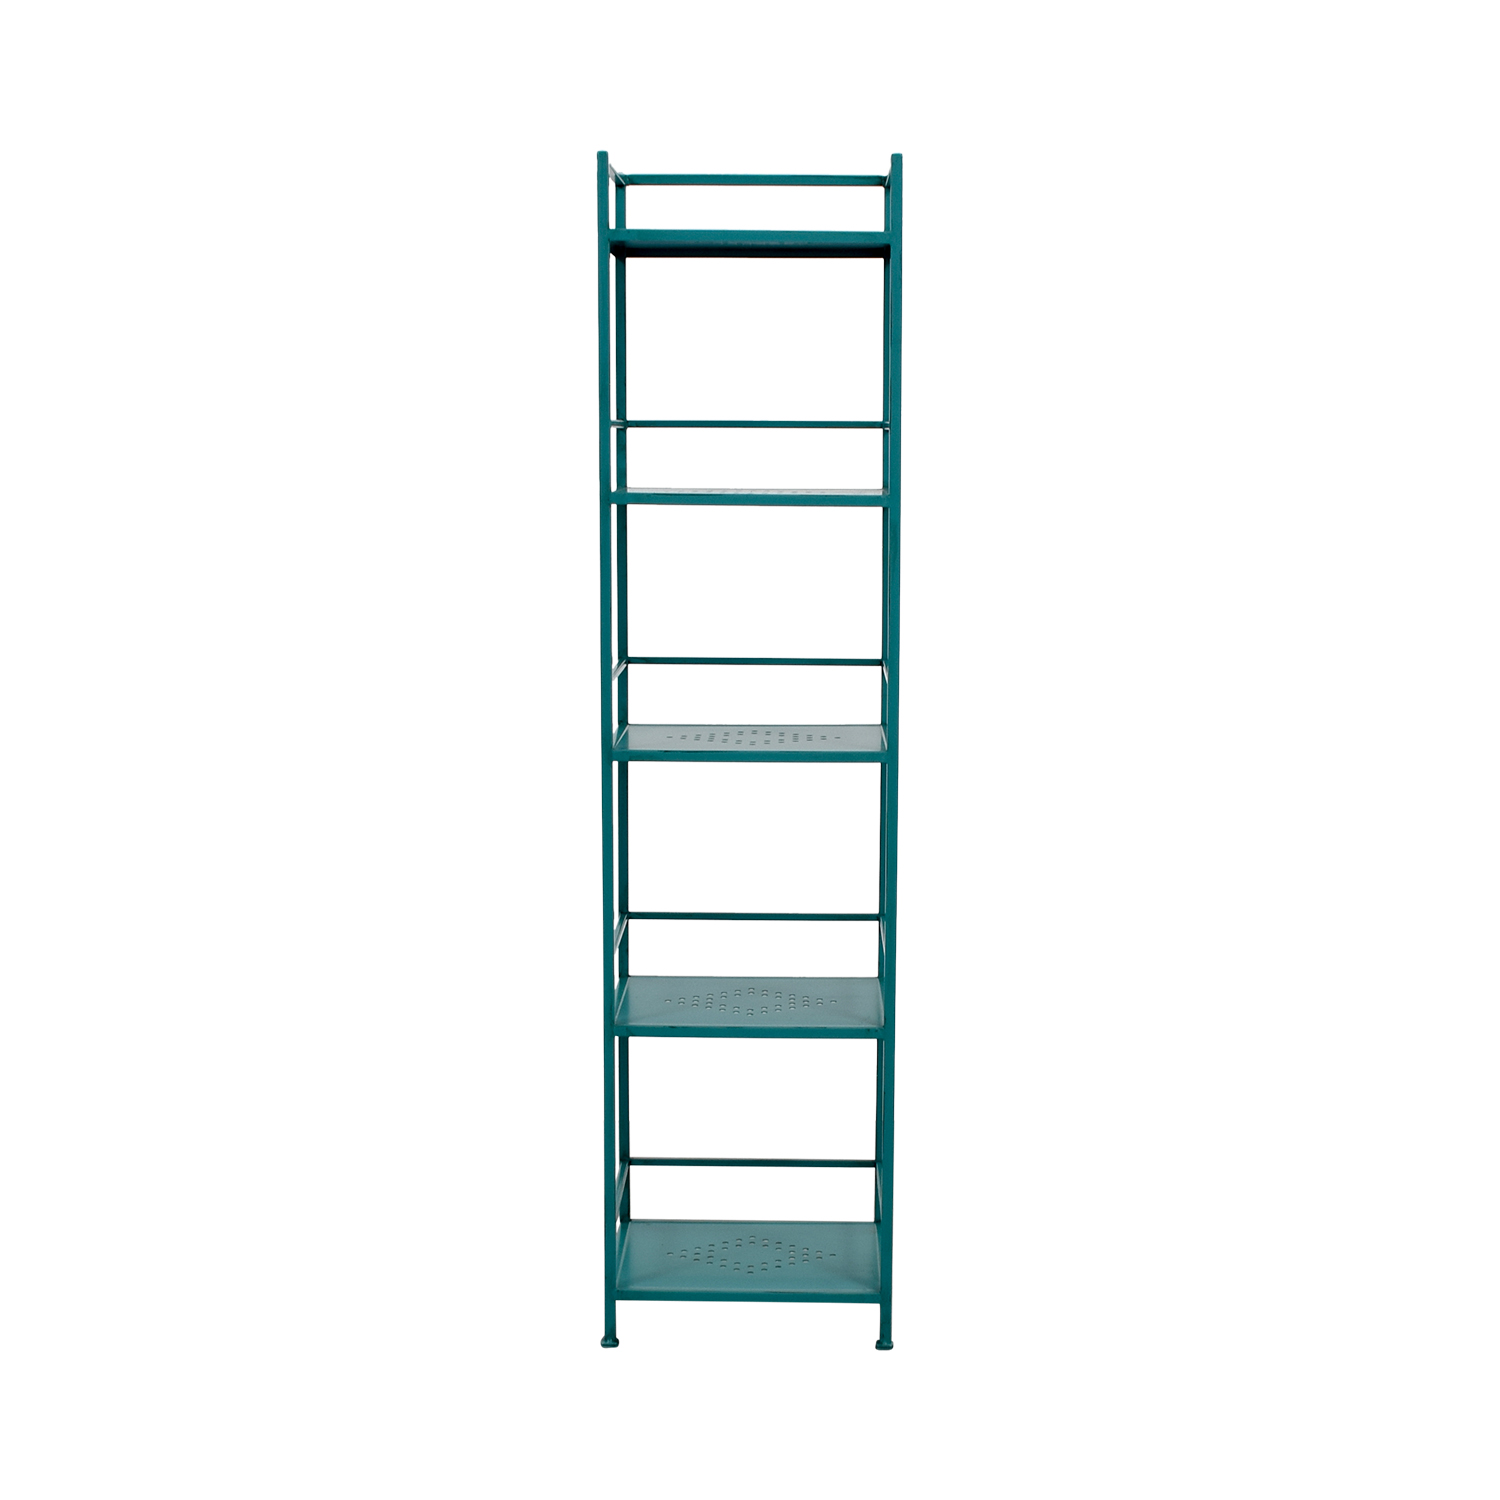 buy Pier 1 Imports Weldon Turquoise Metal High Shelf Pier 1 Imports Storage